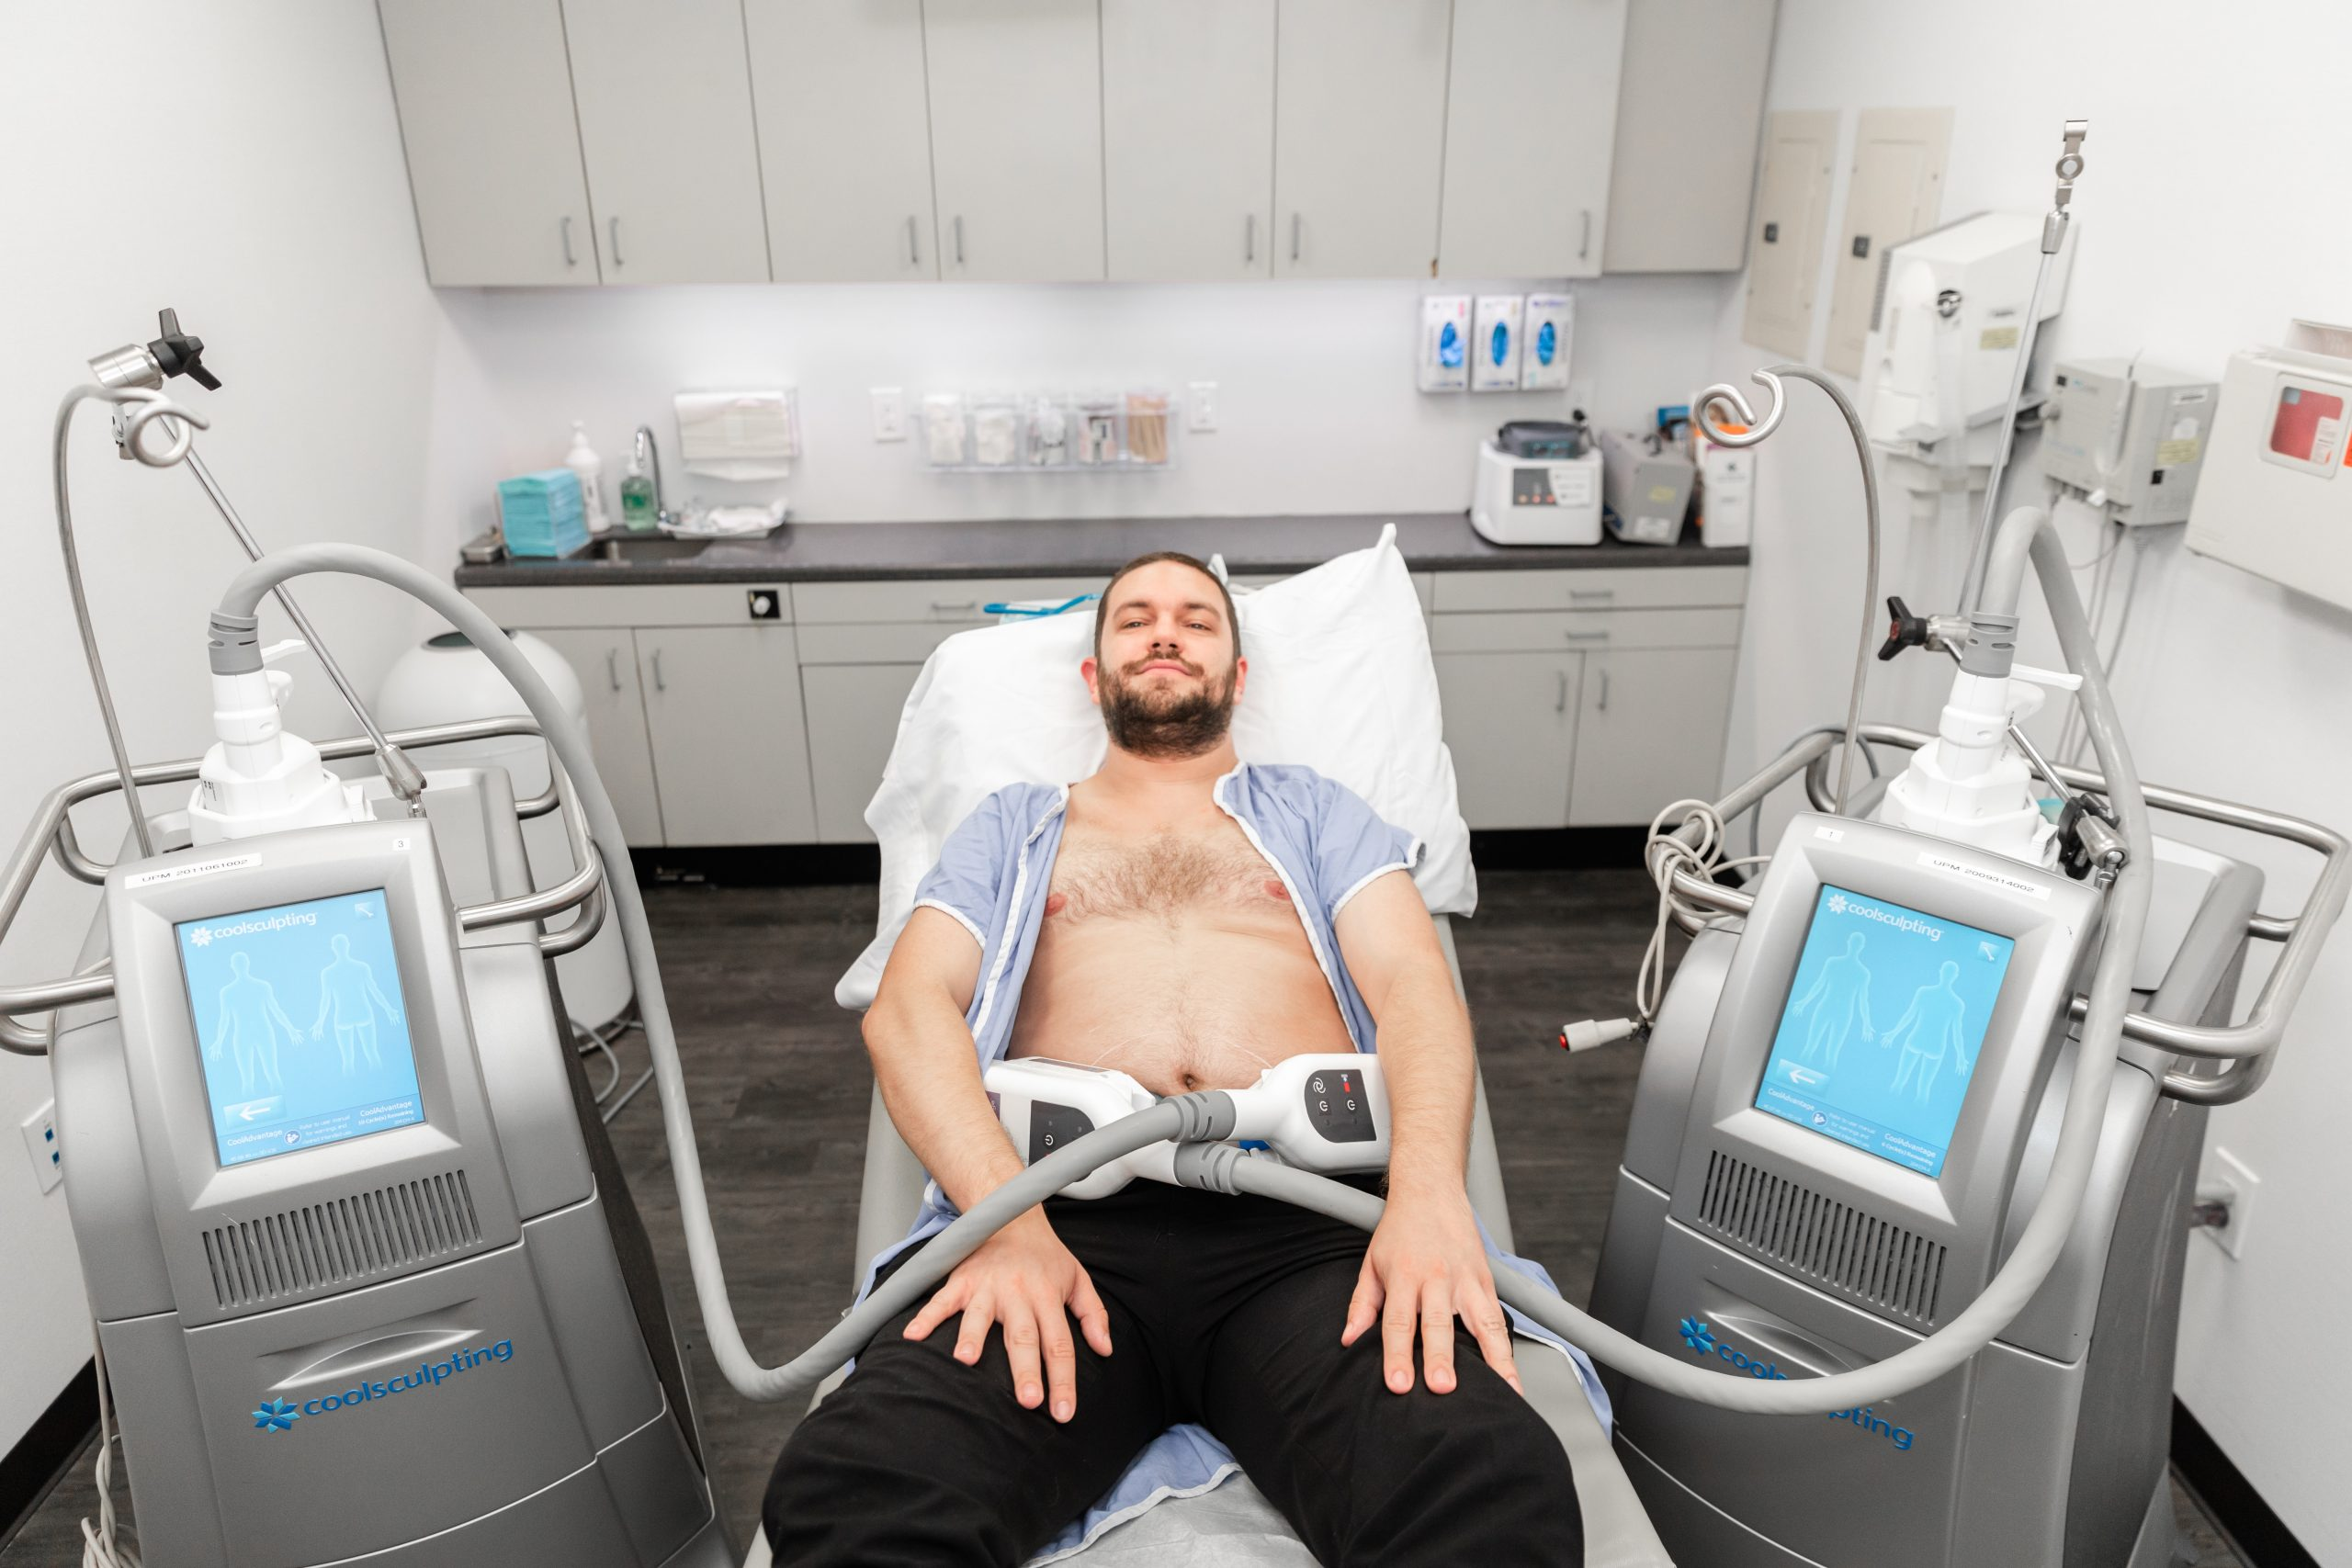 The board-certified physicians, plastic surgeons, and clinical team at the Laser & Skin Surgery Center of New York are focused on working through clinical trials and the development of advanced technologies to provide you with the best noninvasive and surgical body contouring treatments available.